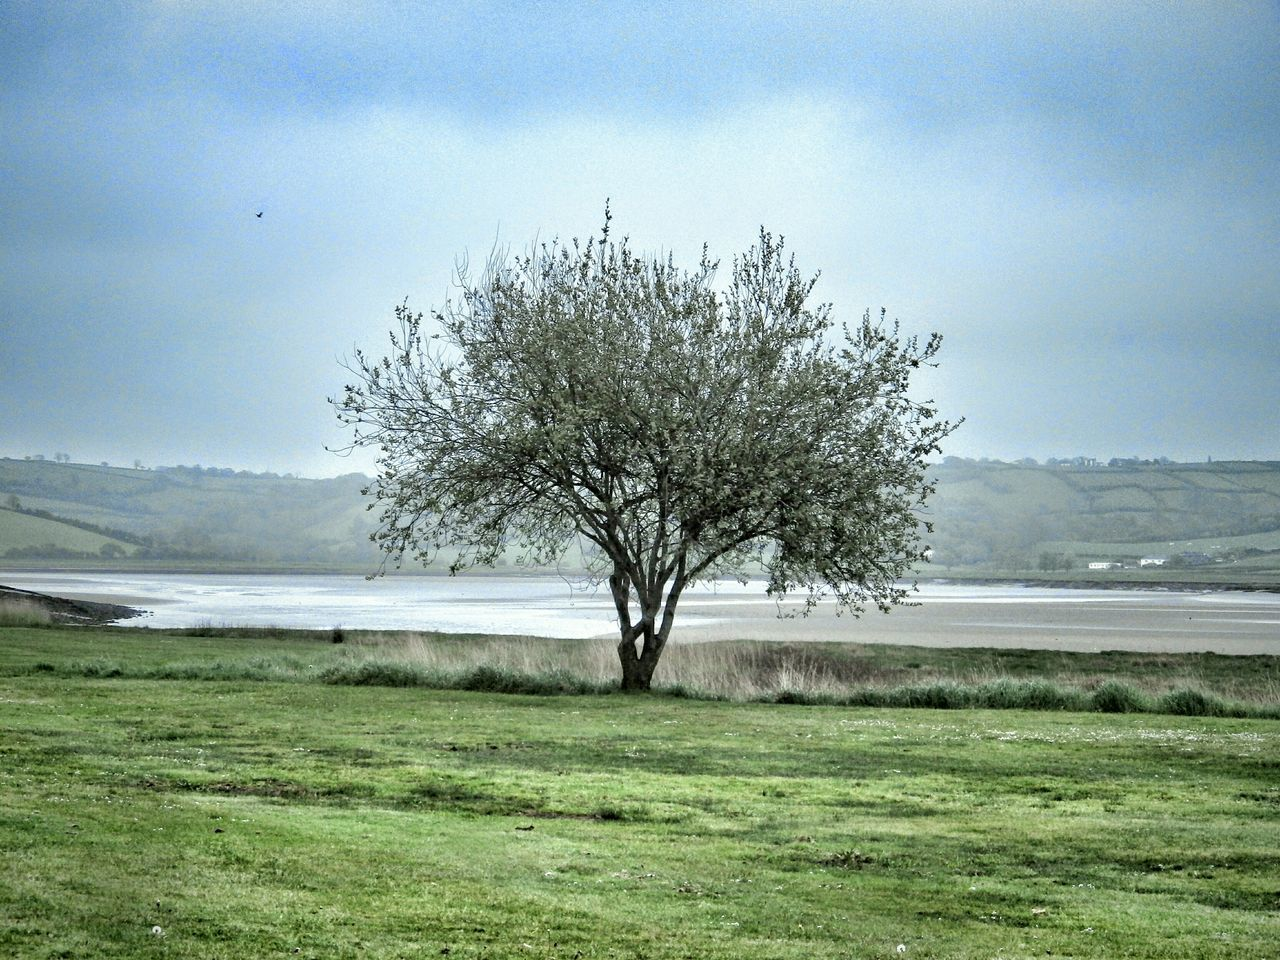 Wales Trees Green Seascape Landscape Taking Photos Photography Check This Out Countryside Hills